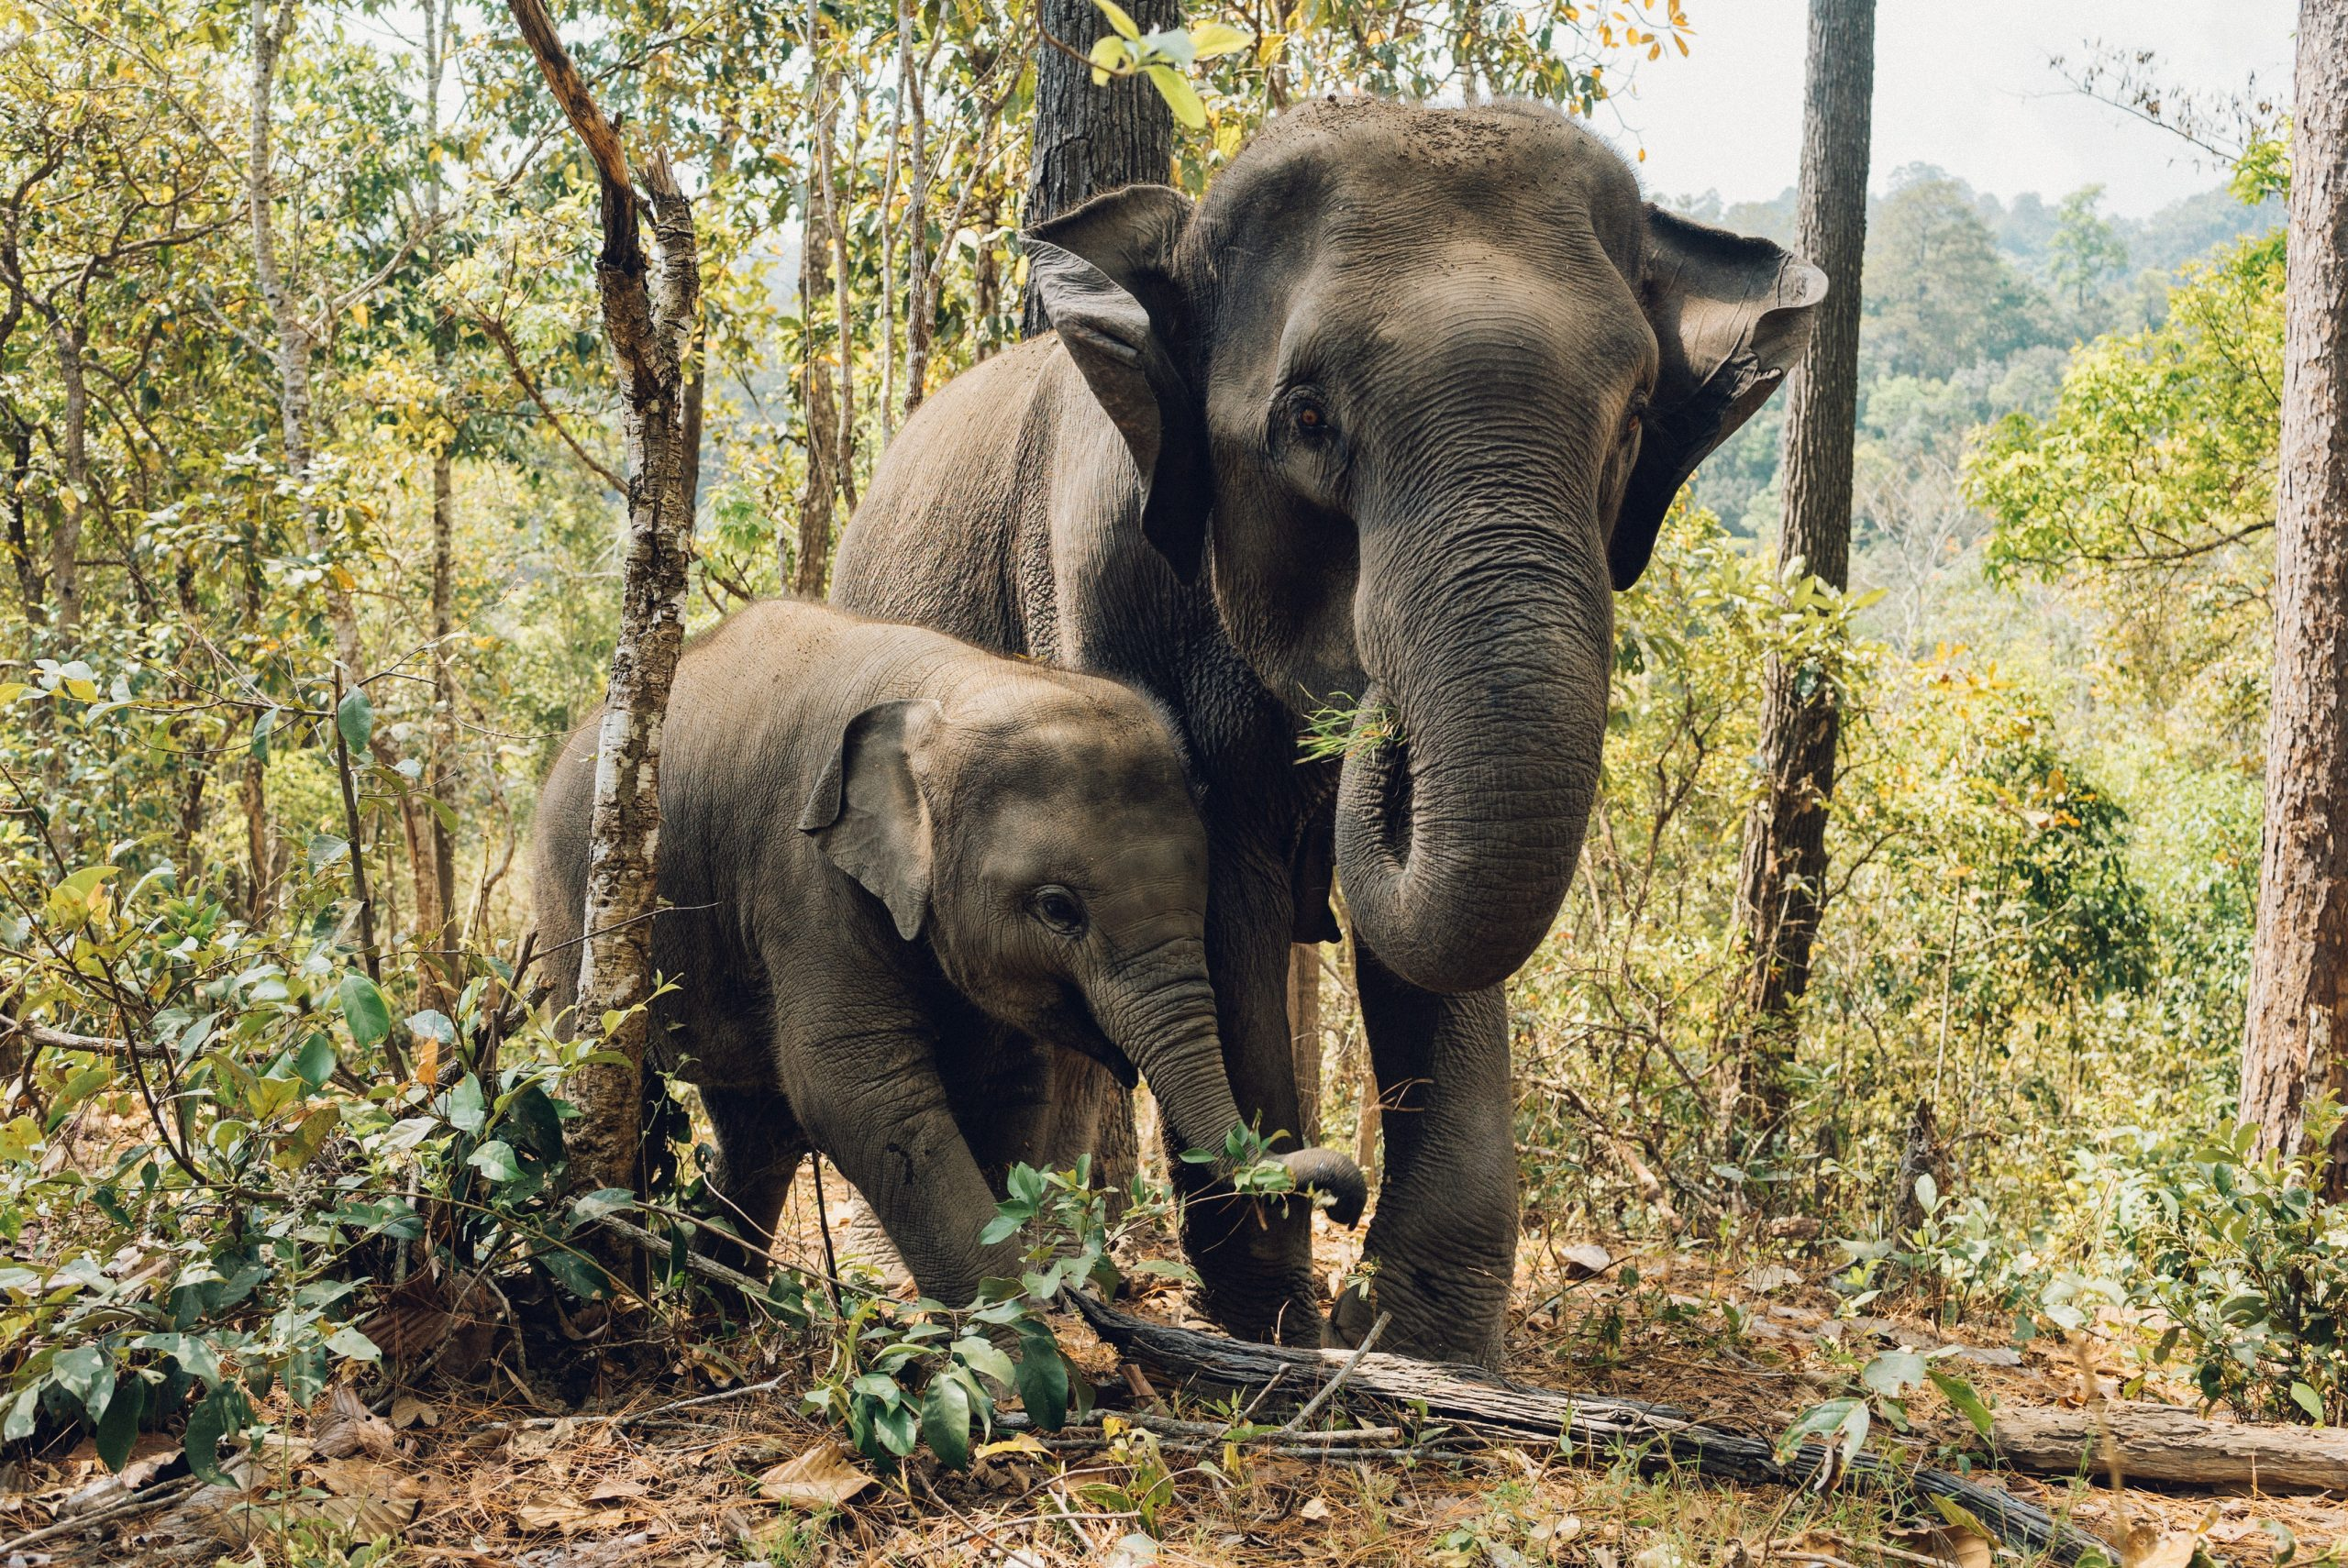 Baby Elephant Being Used as Party Prop to Entertain Guests at Five-Star Resort